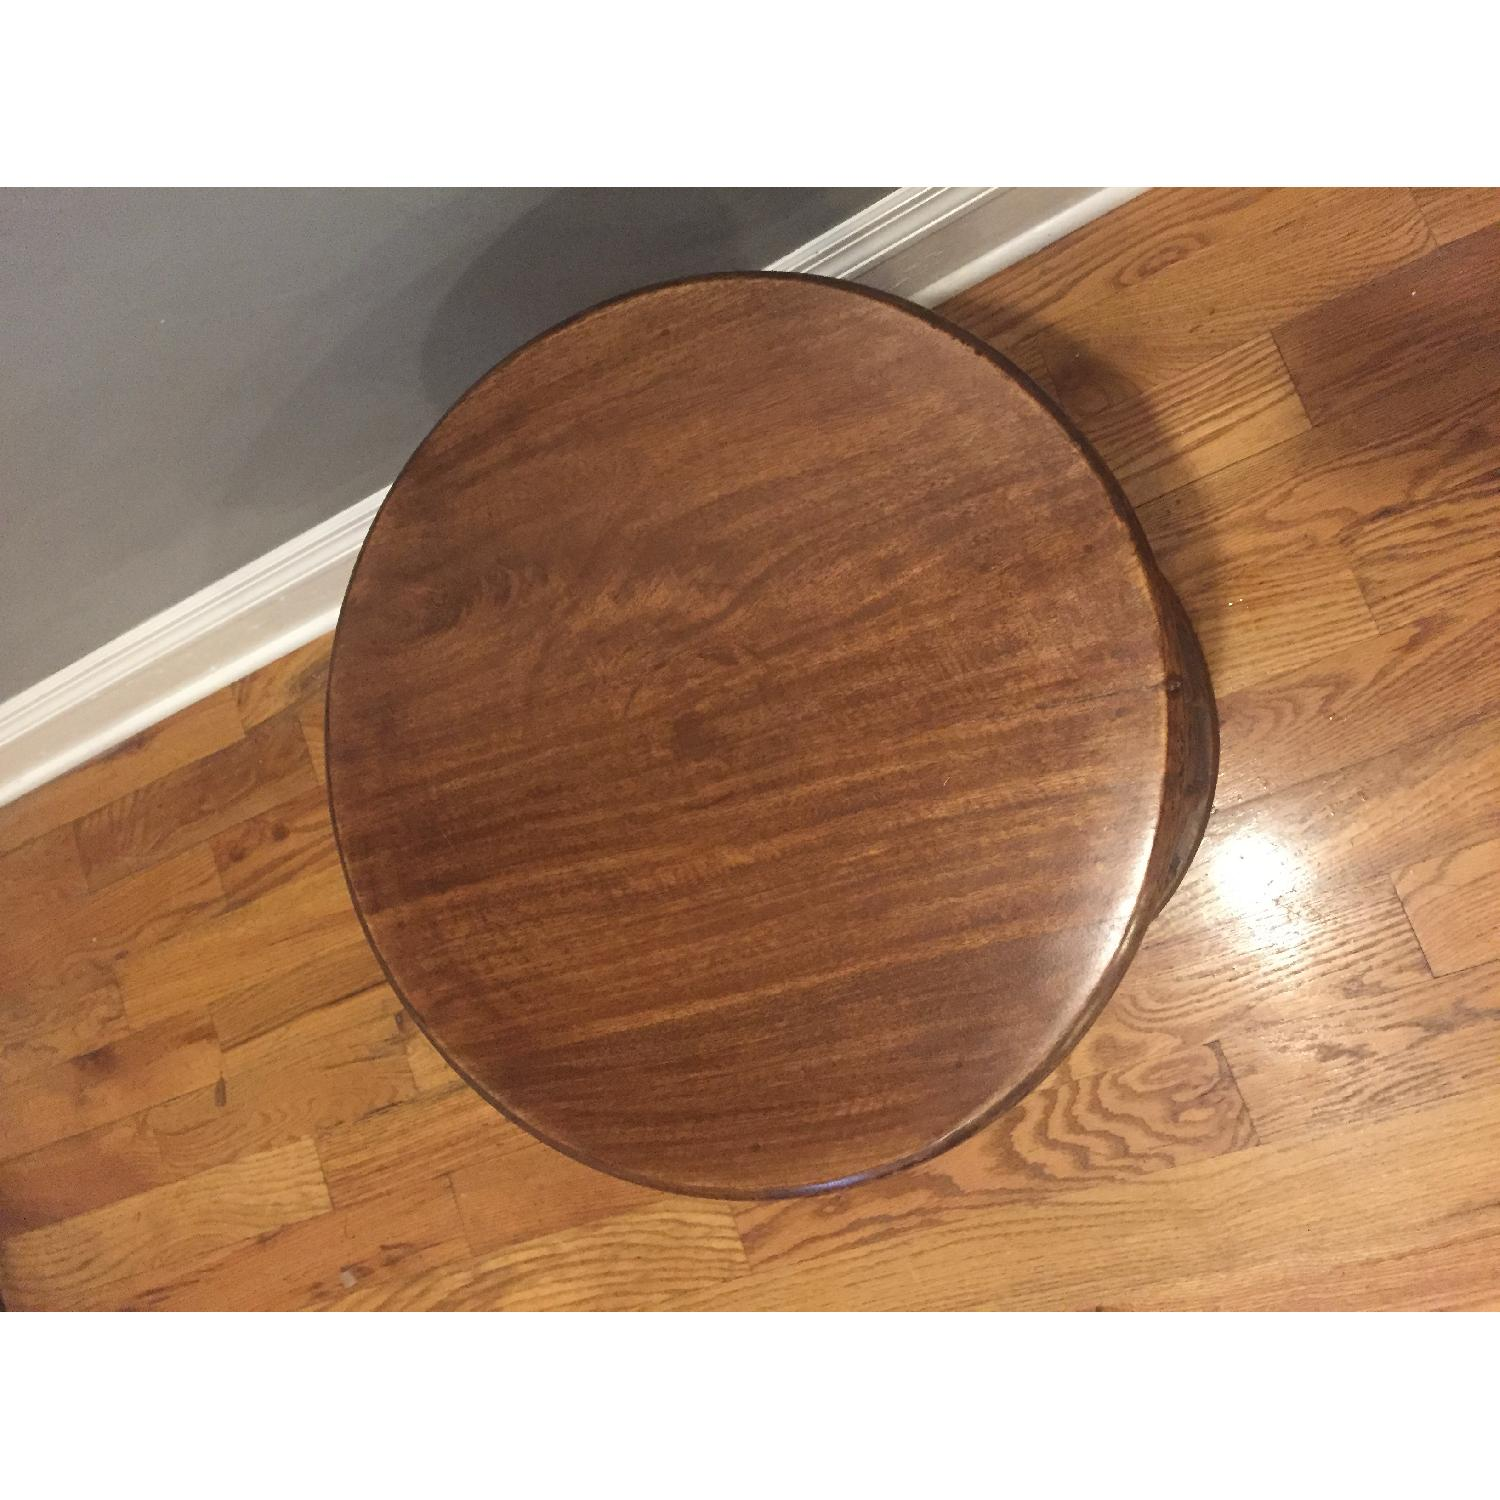 Ballard Designs Round Carved Wood Side Table - image-3